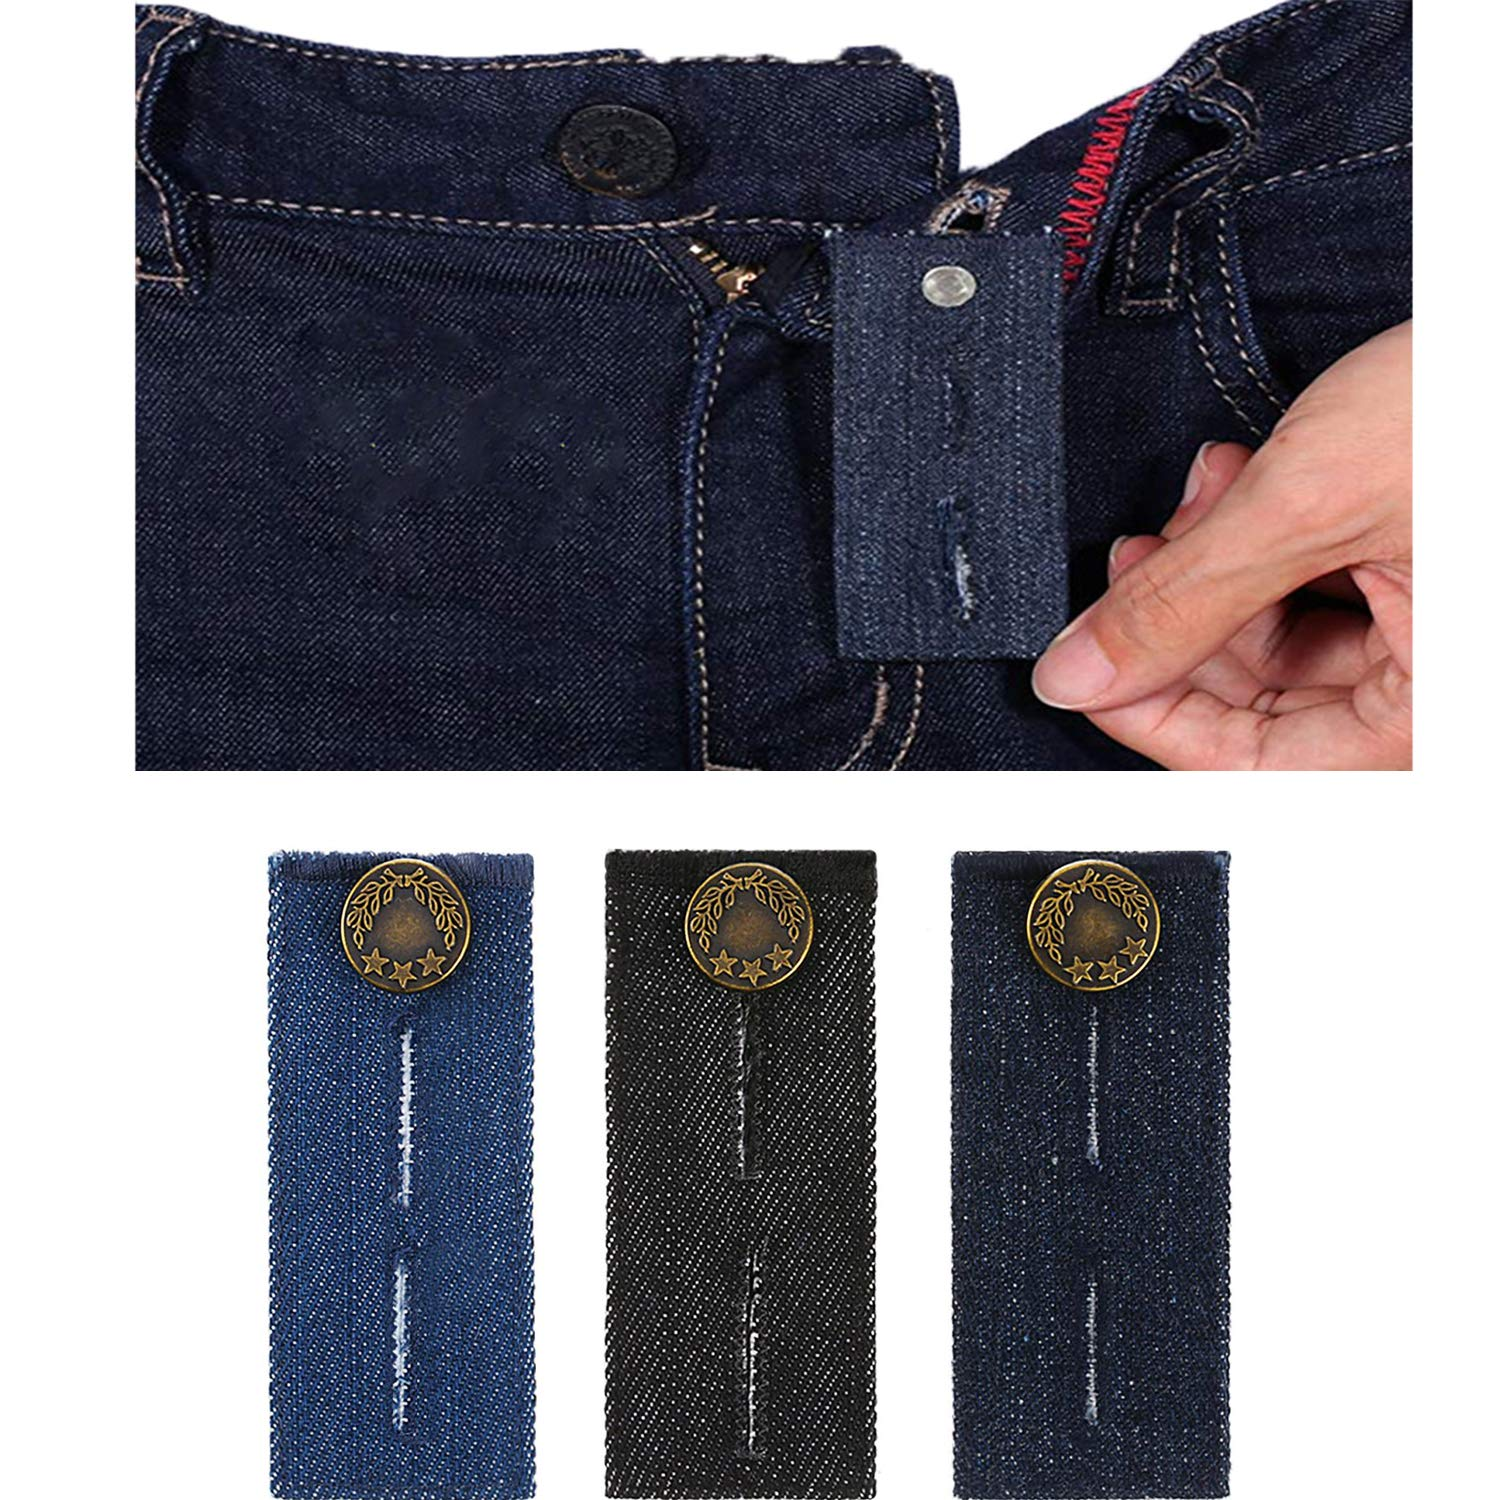 Amazon.com: Belly band-denim Cintura Extender/con botón de ...